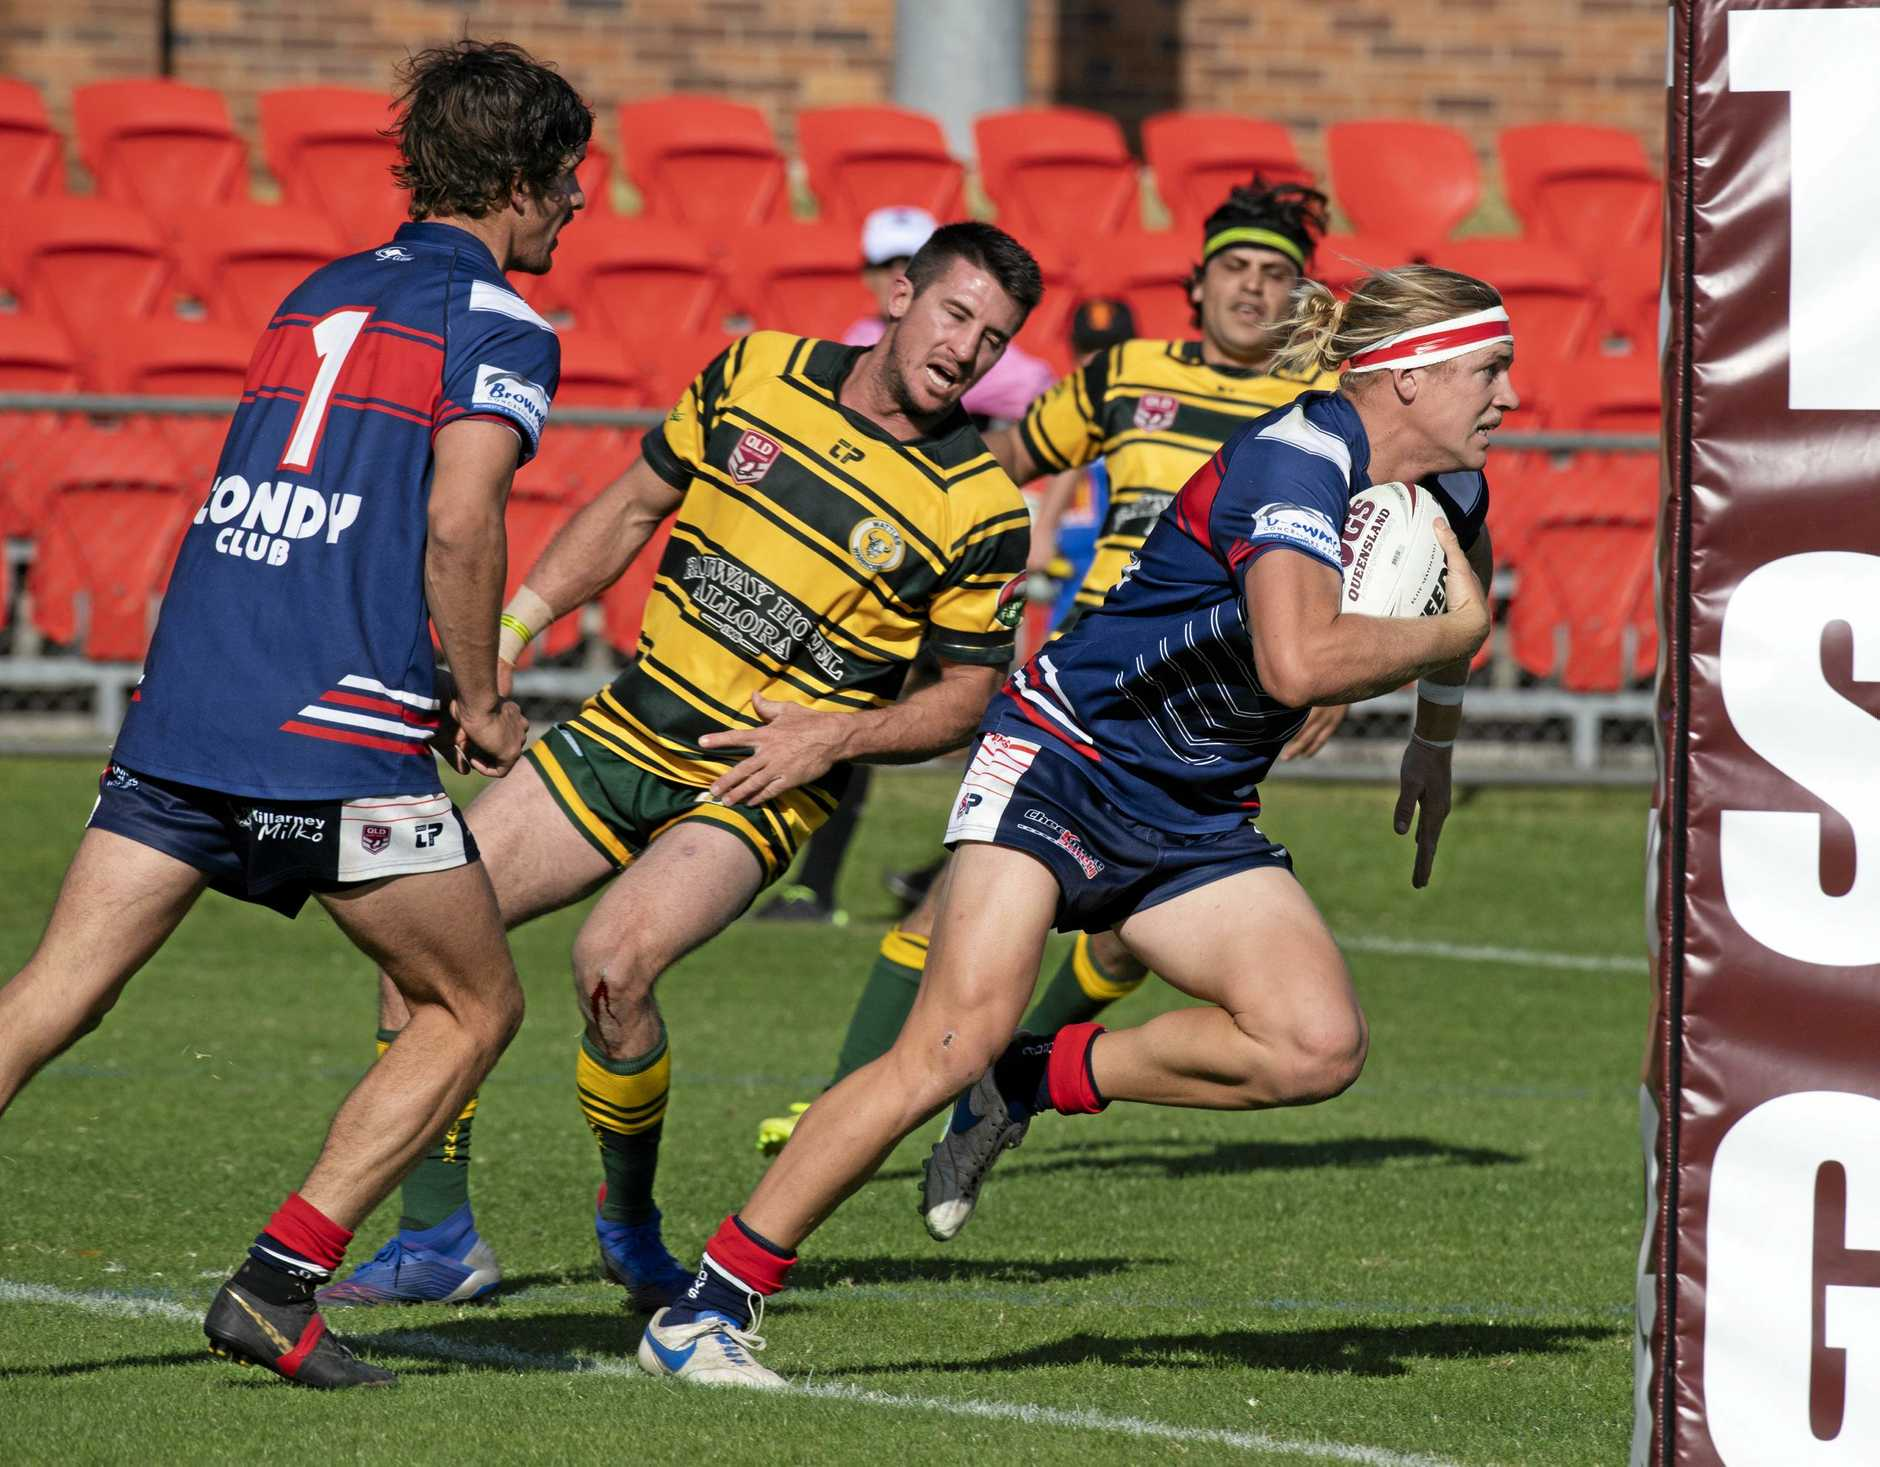 CLASS: Warwick winger Mitch Watson impressed in the Cowboys 26-12 win against Wattles on Sunday in the TRL.